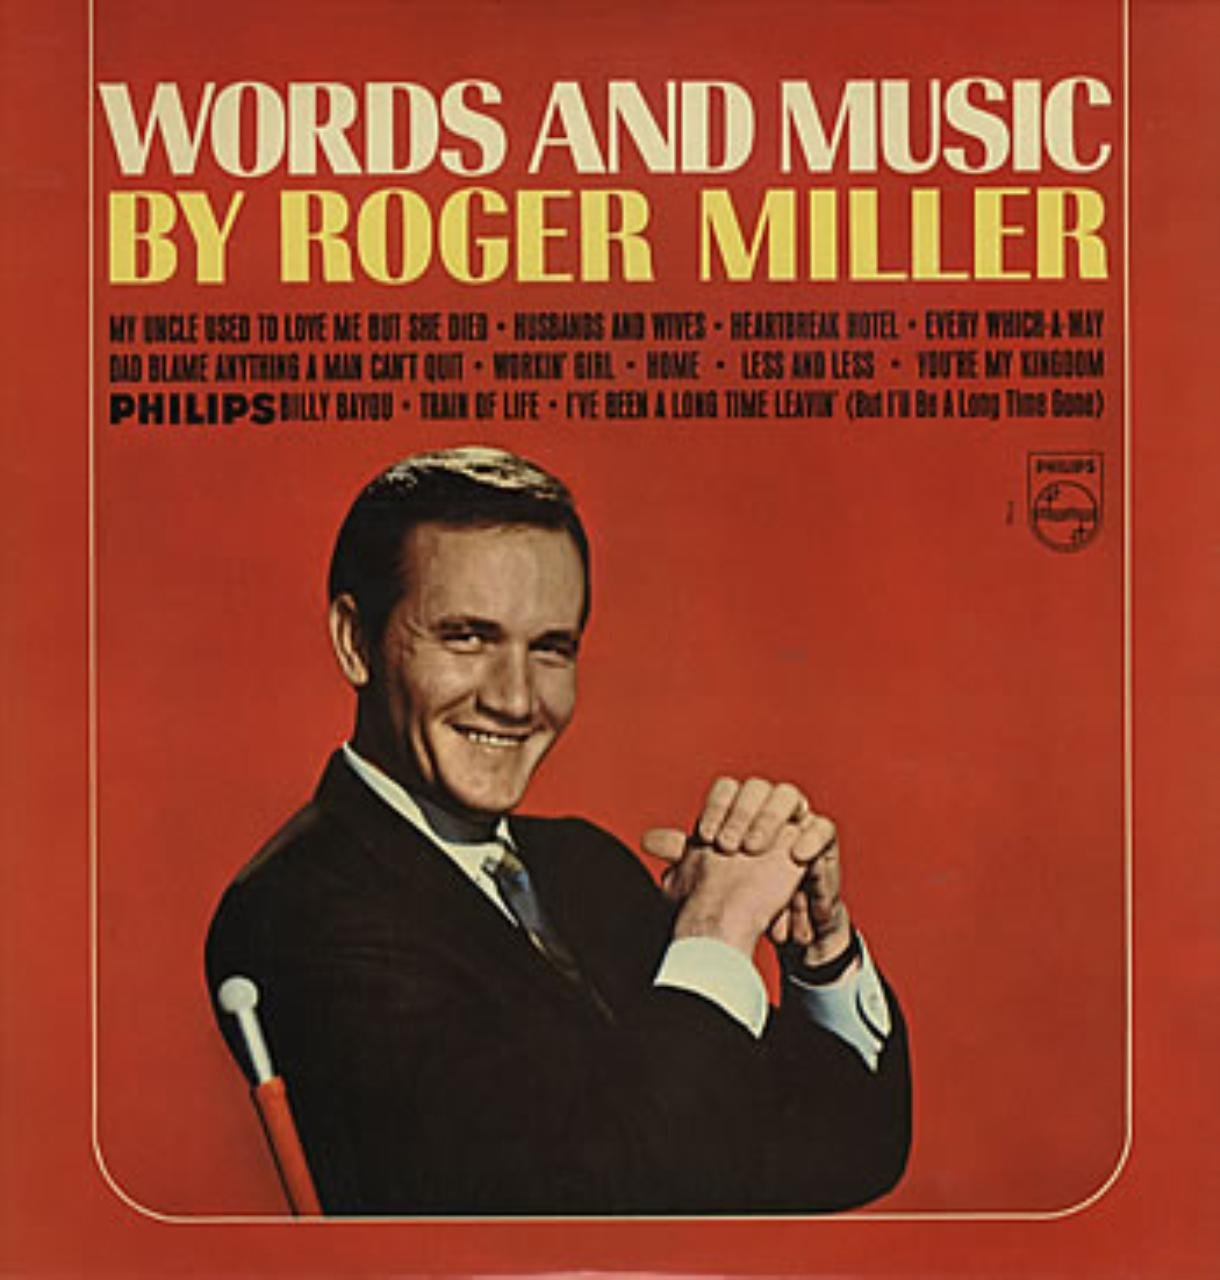 Words And Music By Roger Miller by Smash Records